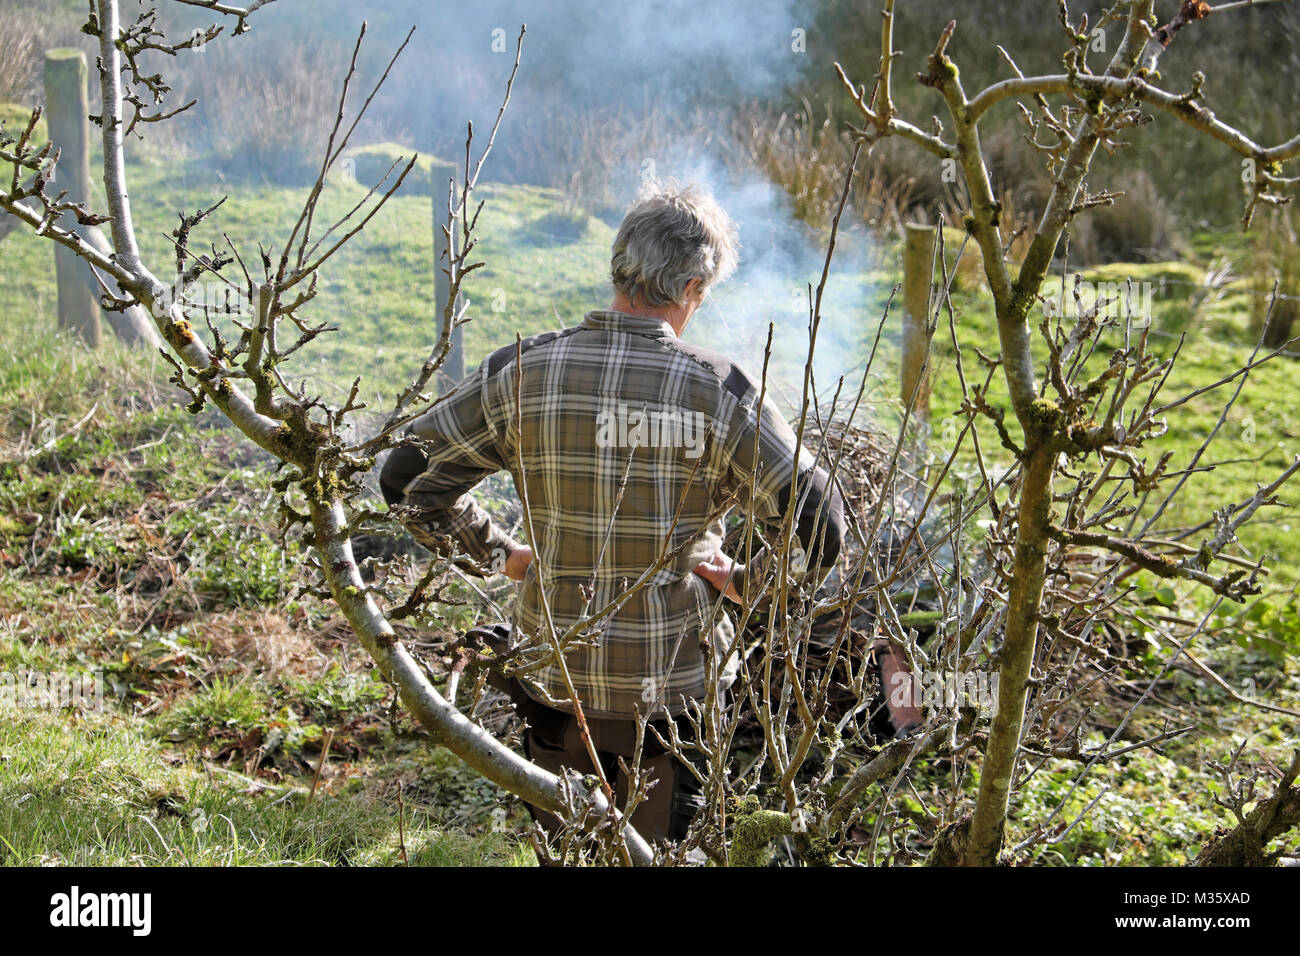 A man lighting a bonfire in the garden tidying up and burning old sticks and branches in preparation for spring - Stock Image